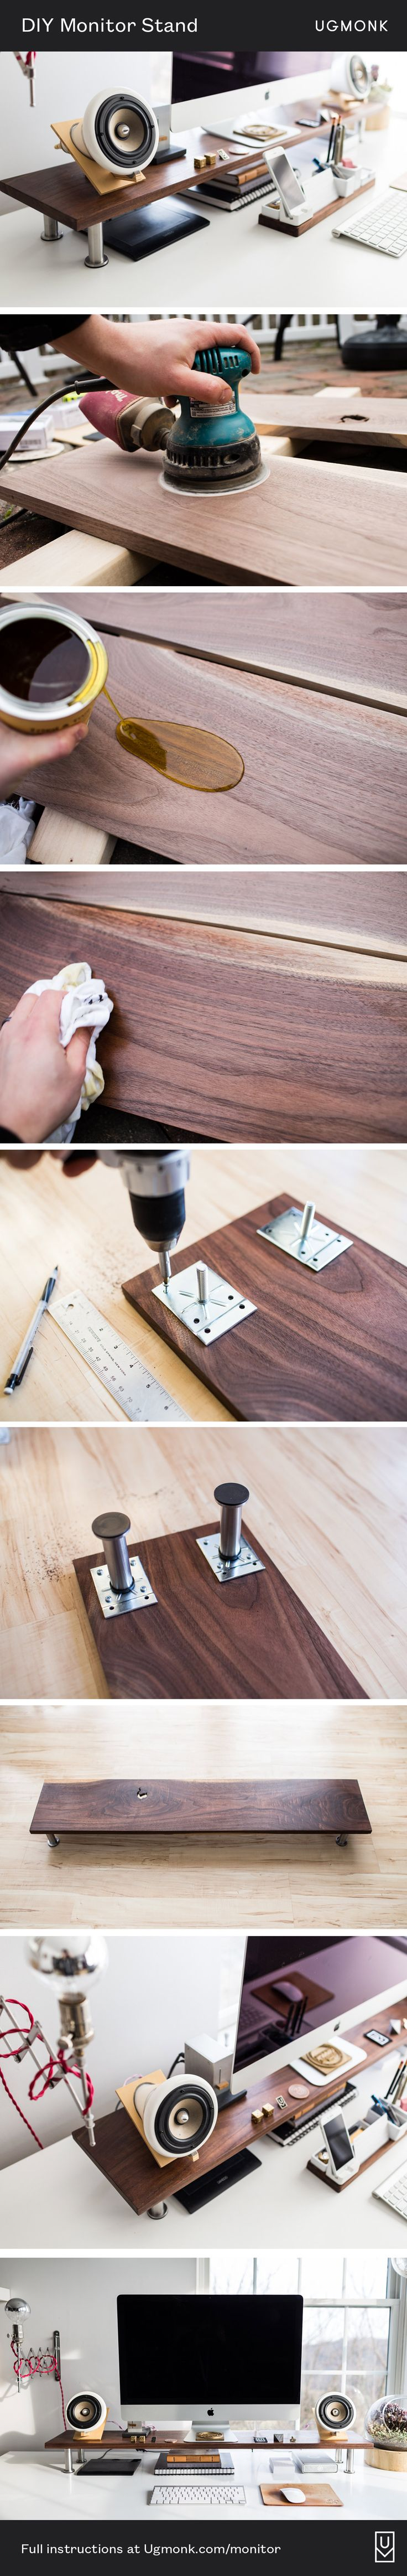 Ugmonk | Simple and easy DIY wood monitor stand for better ergonomics and storage space. Detailed instructions in the post: http://ugmonk.com/2017/02/23/my-diy-monitor-stand/